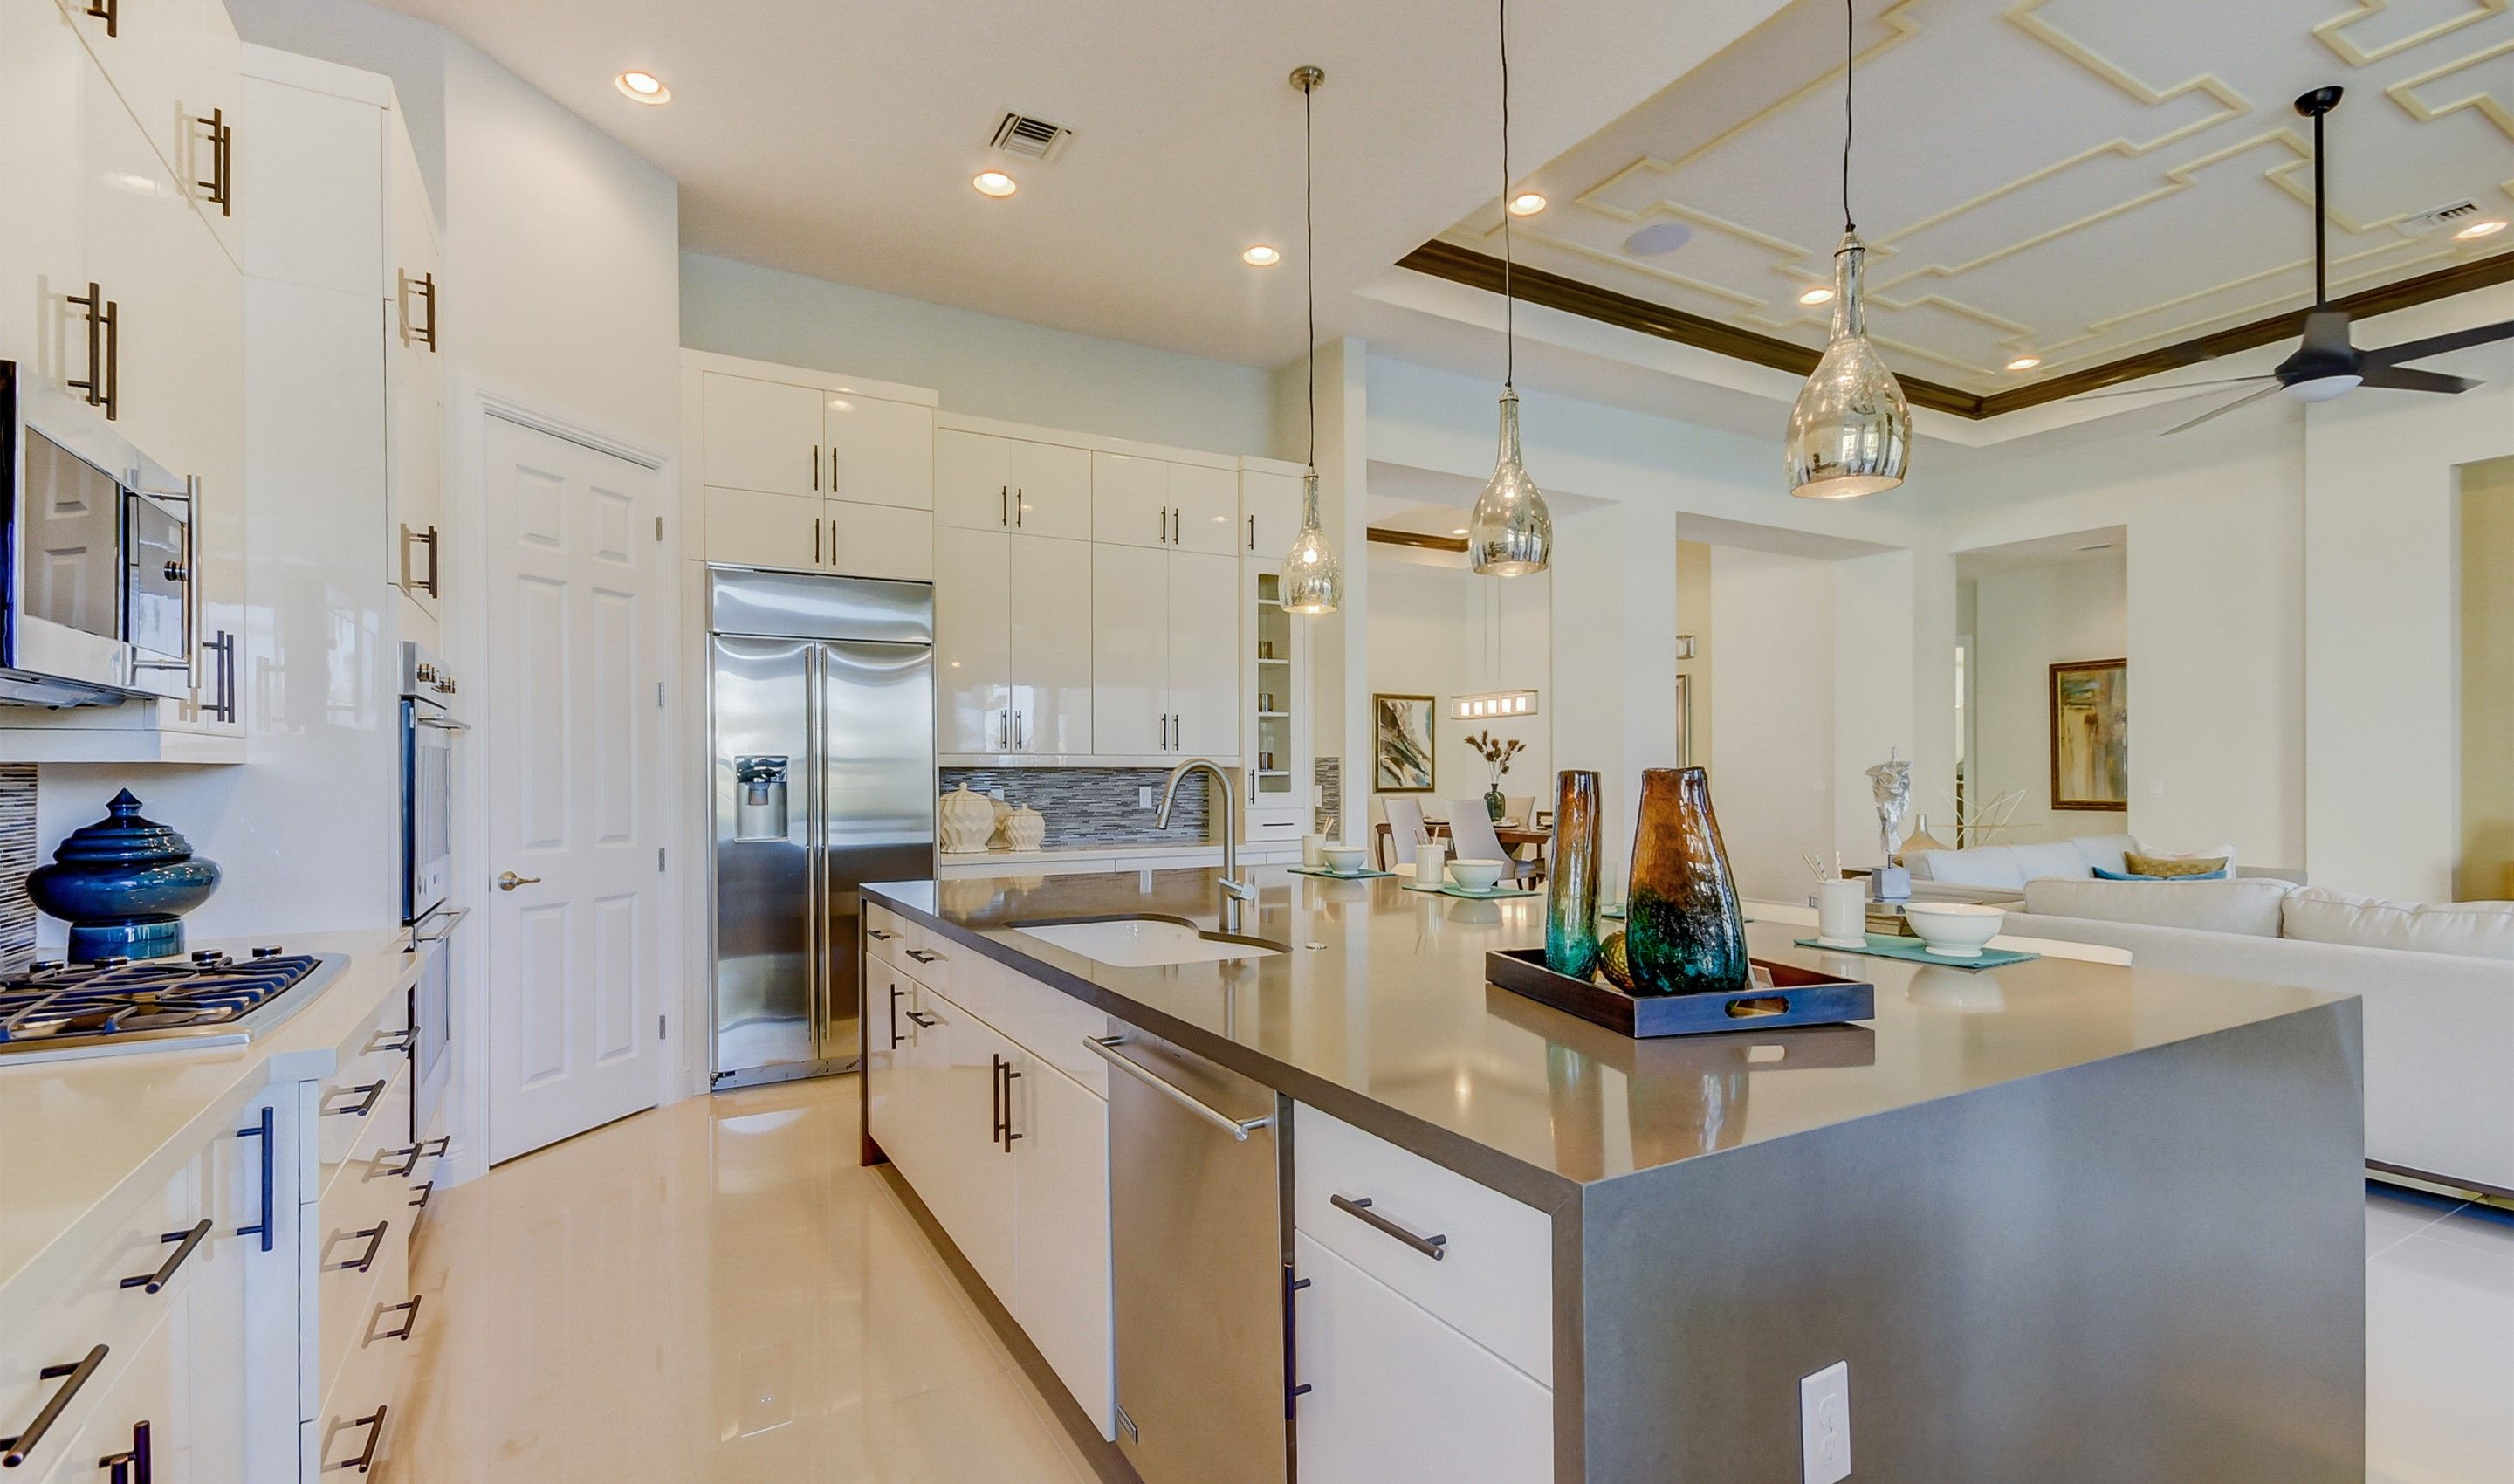 Kitchen featured in the Verna By K. Hovnanian's® Four Seasons in Broward County-Ft. Lauderdale, FL